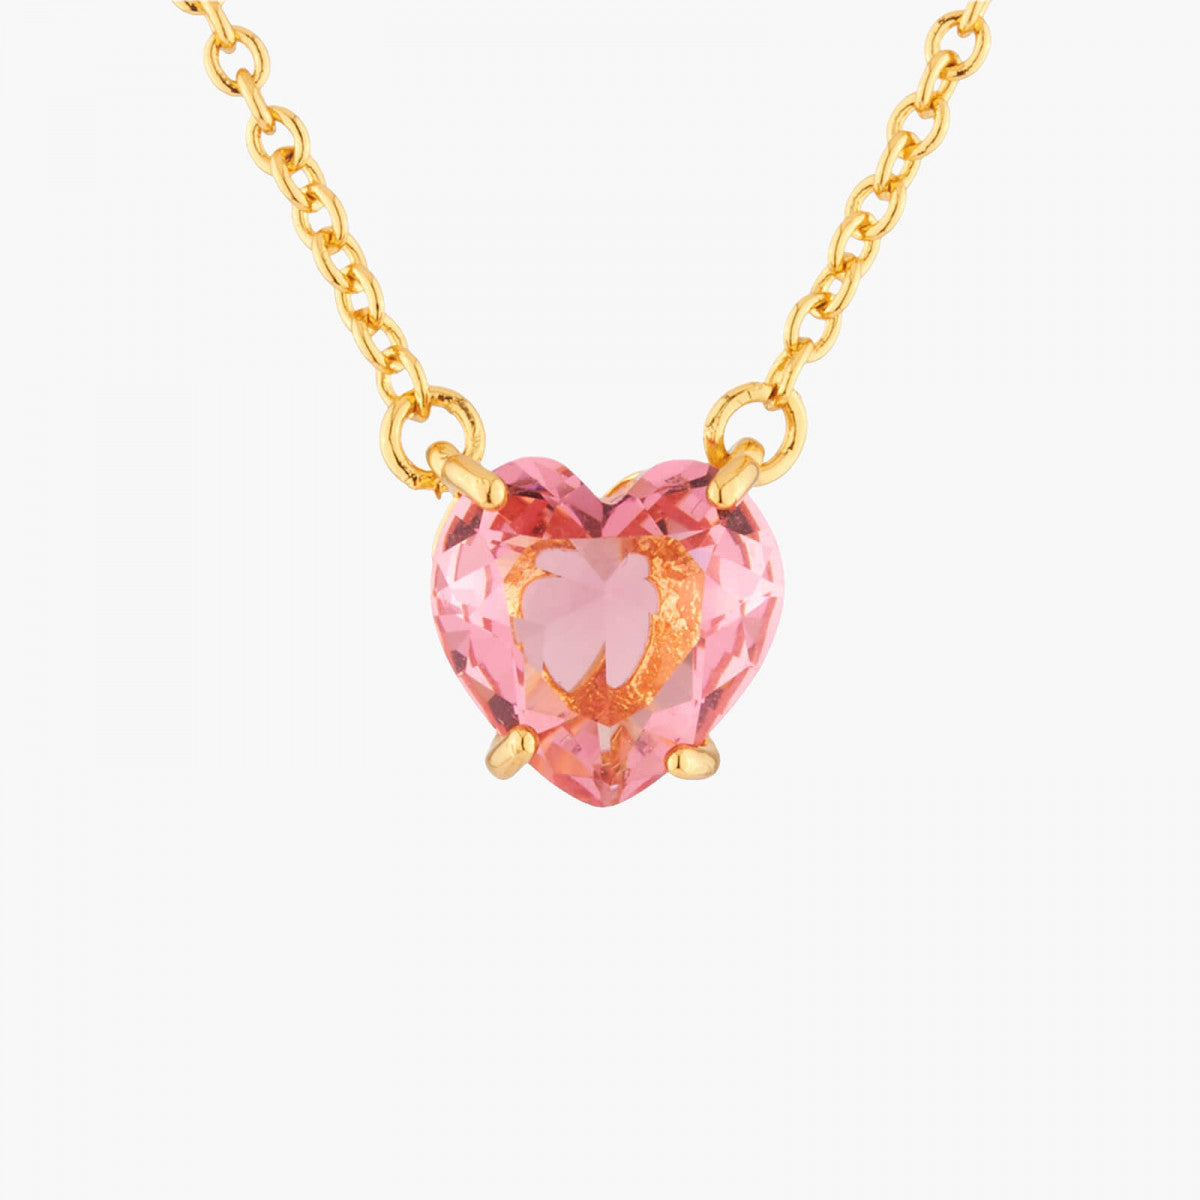 La Diamantine Necklace with Small Heart Stone